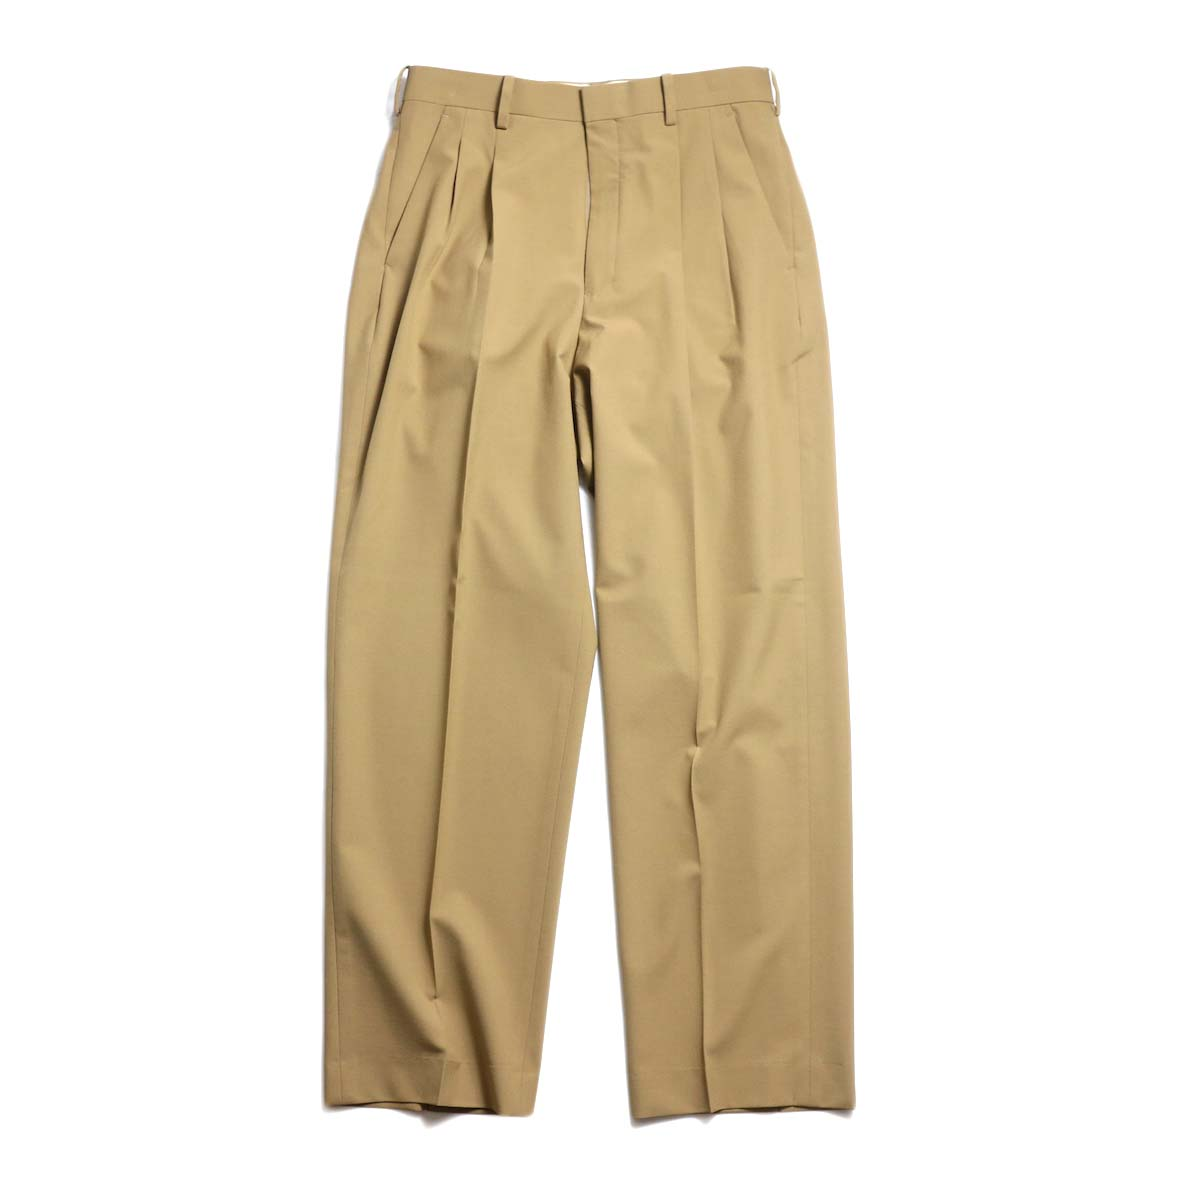 N.HOOLYWOOD / 191-PT08-055-pieces 2tuck Slacks (Beige)